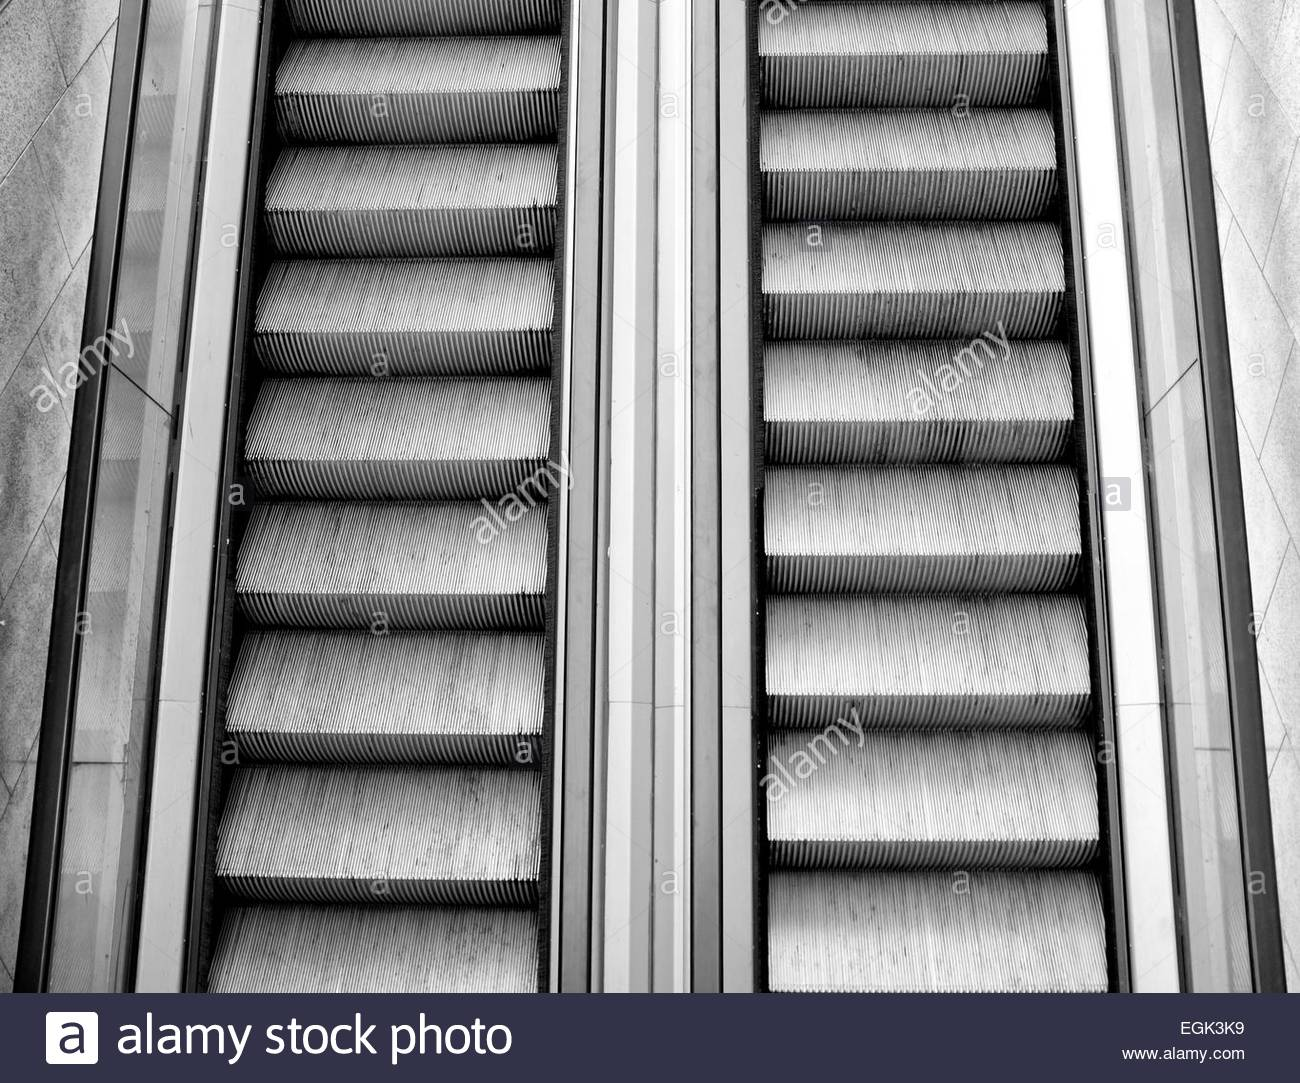 Elevated view of escalator - Stock Image